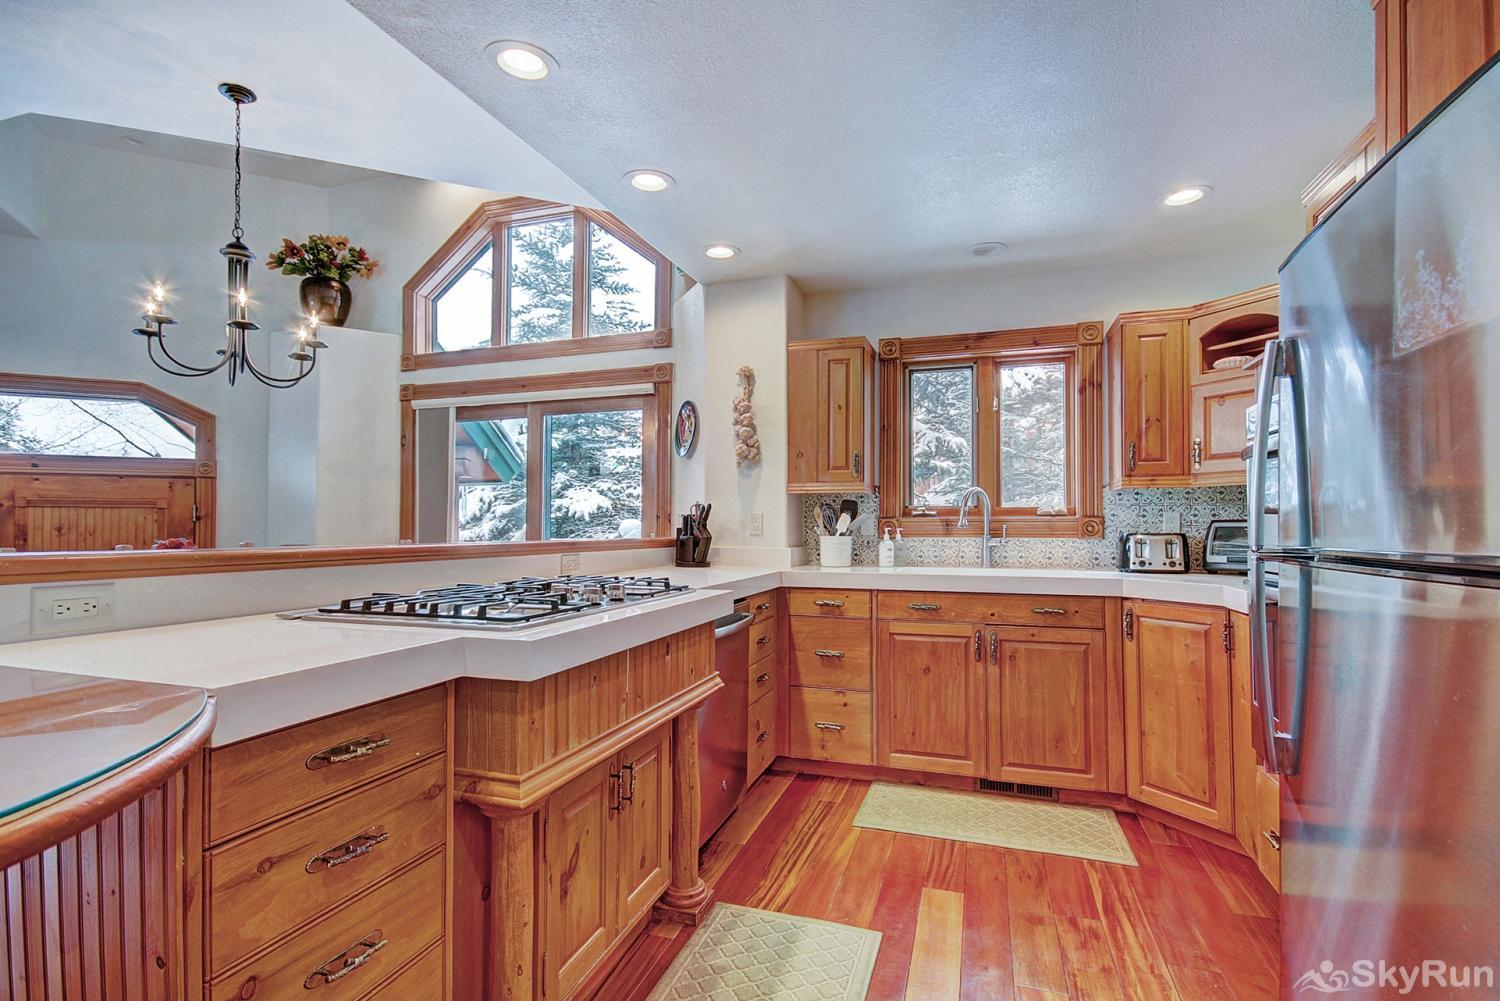 Dogwood Lodge Newly remodeled kitchen with modern appliances